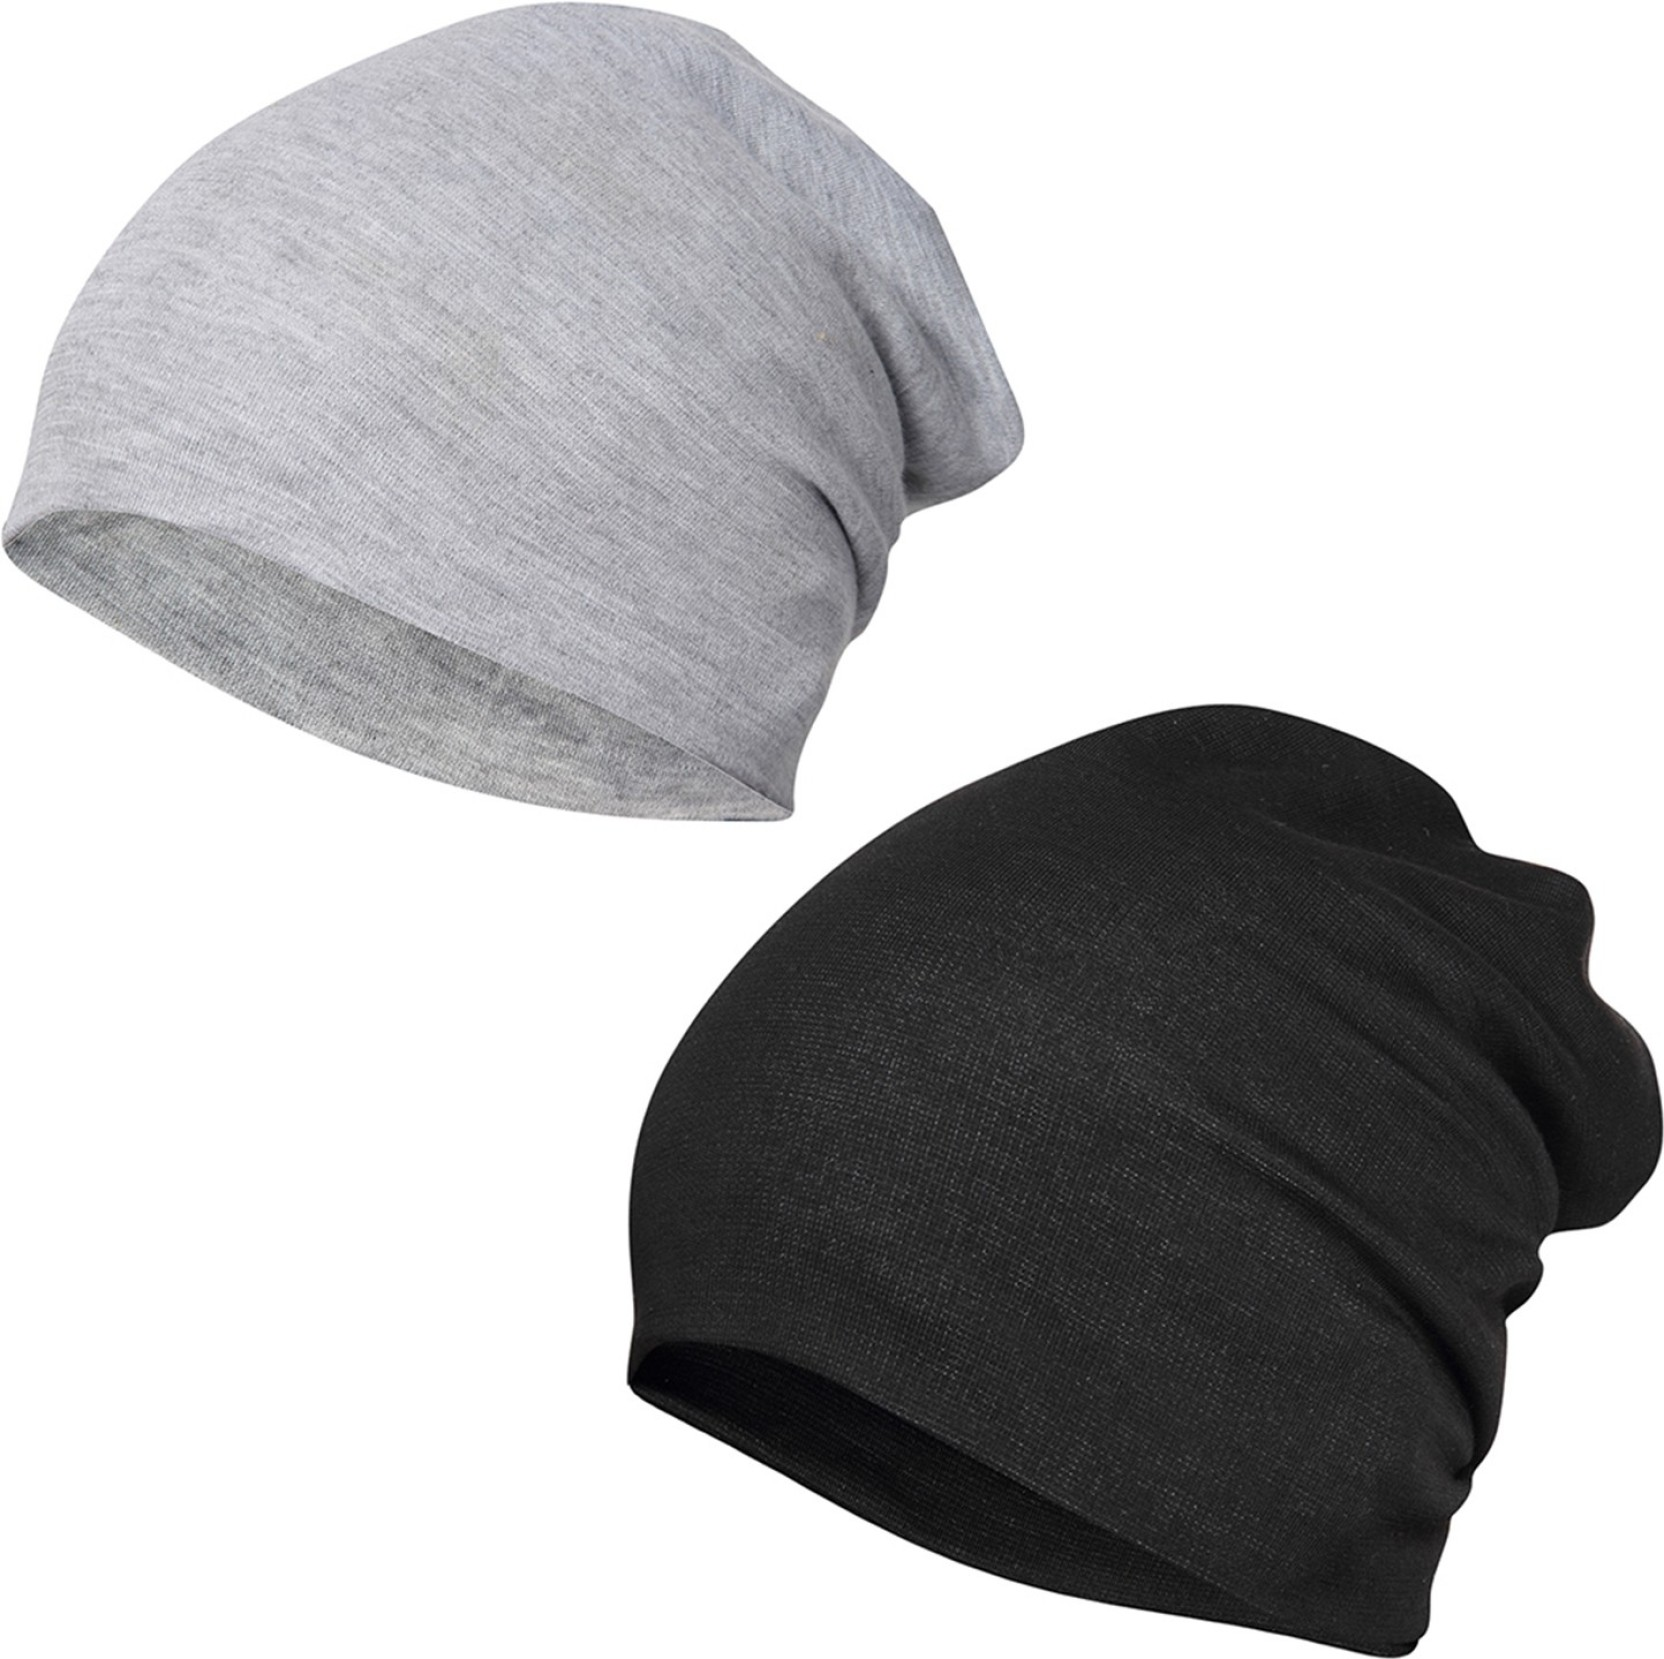 17f2f039 FabSeasons Solid Cotton Slouchy Beanie and Skull Cap for Summer, Winter,  Autumn & Spring Season.(Gray, Black) Cap (Pack of 2)